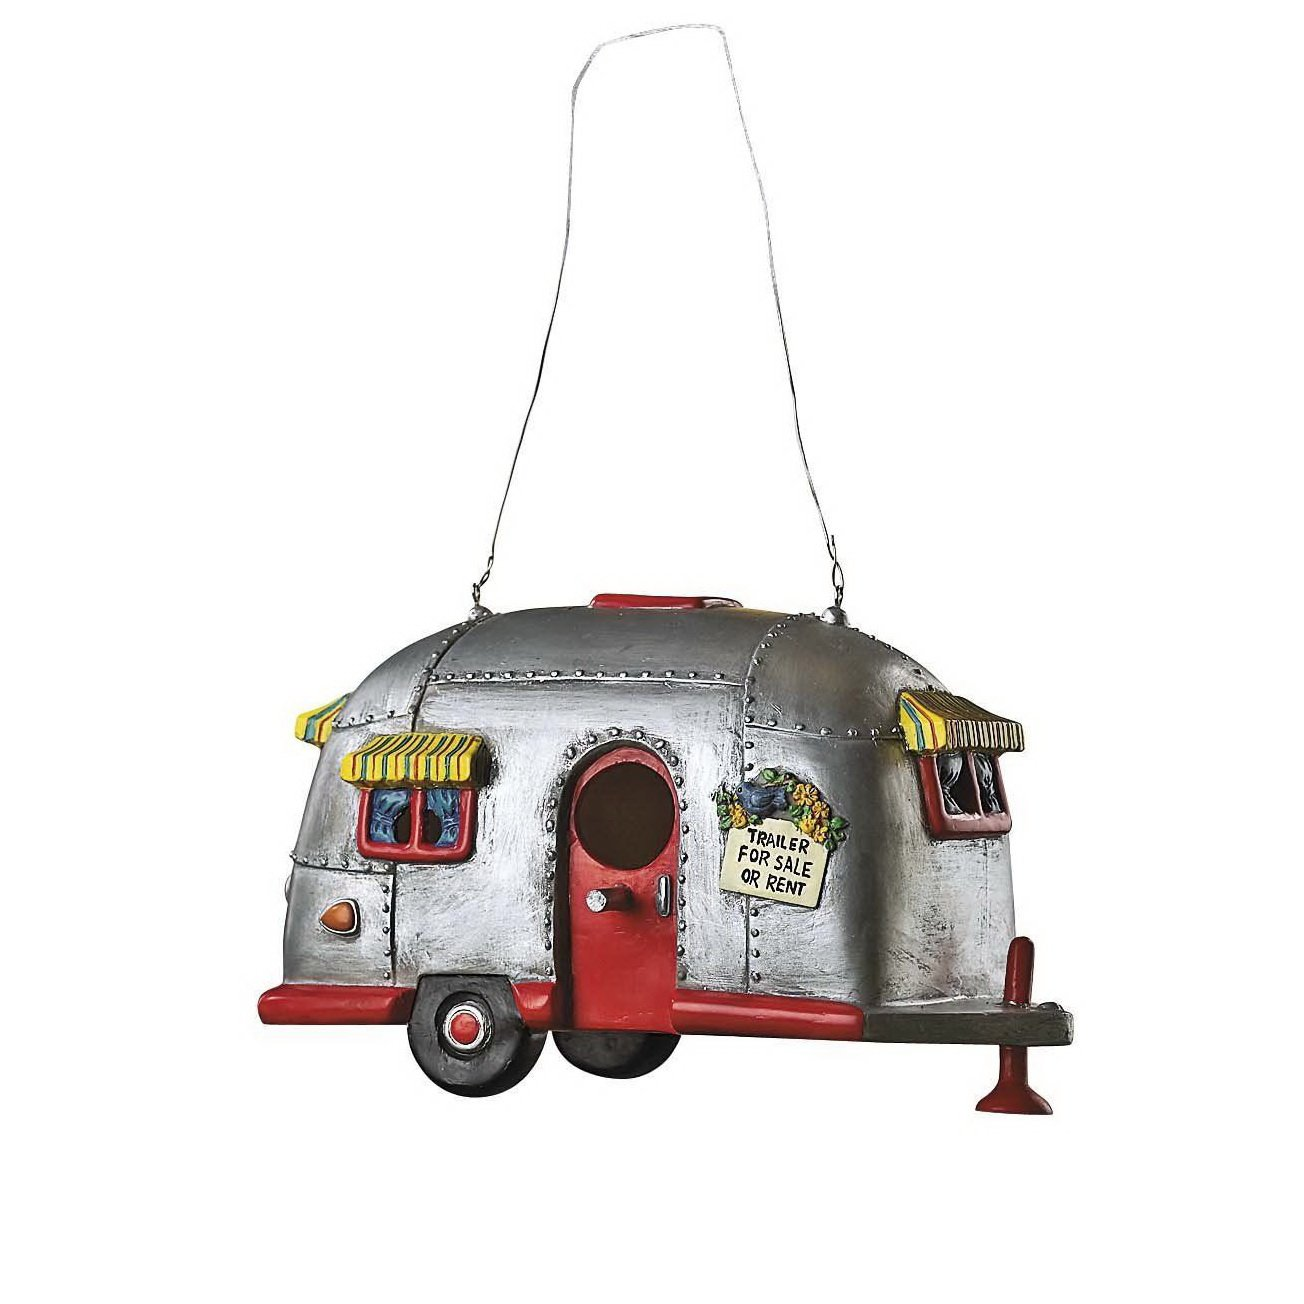 Amazon.com : Camper Birdhouse Trailer Bird House Airstream Style RV ...